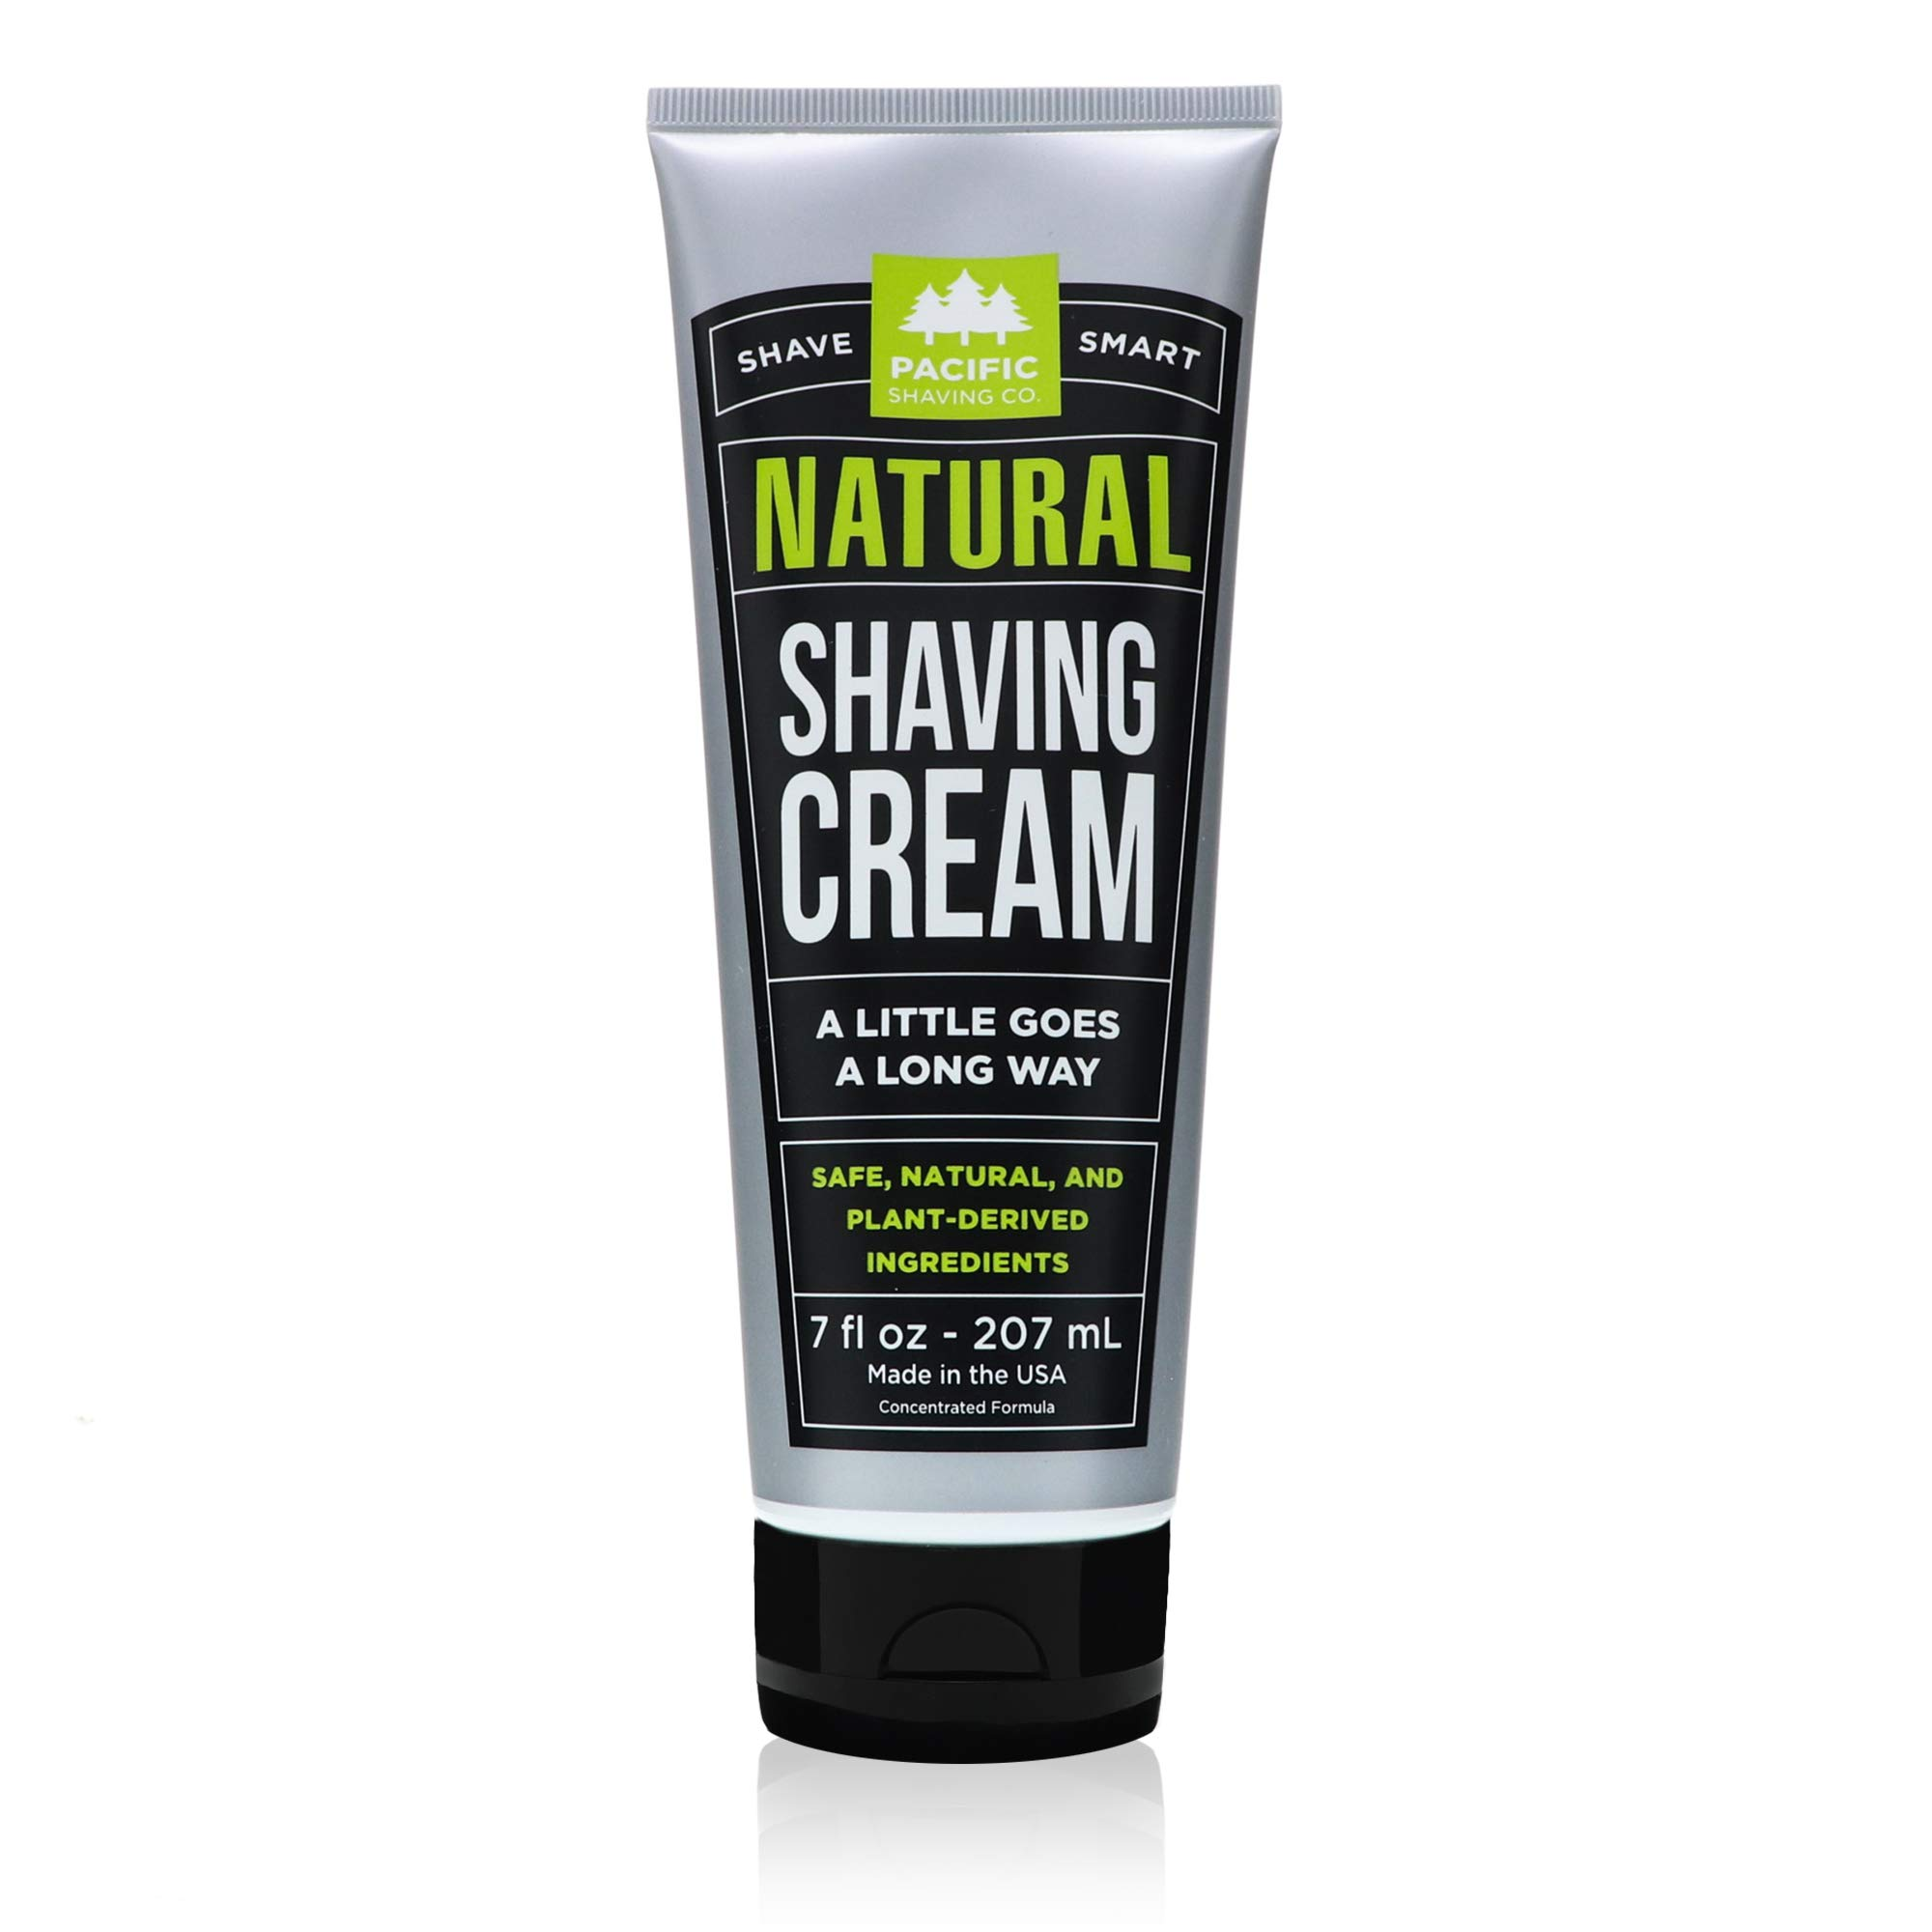 Pacific Shaving Company Natural Shave Cream - with Safe, Natural, Plant-Derived Ingredients for a Smooth Shave, Healthy, Hydrated, Softer Skin, Less Irritation, Cruelty-Free, Made in USA, 7 fl. oz